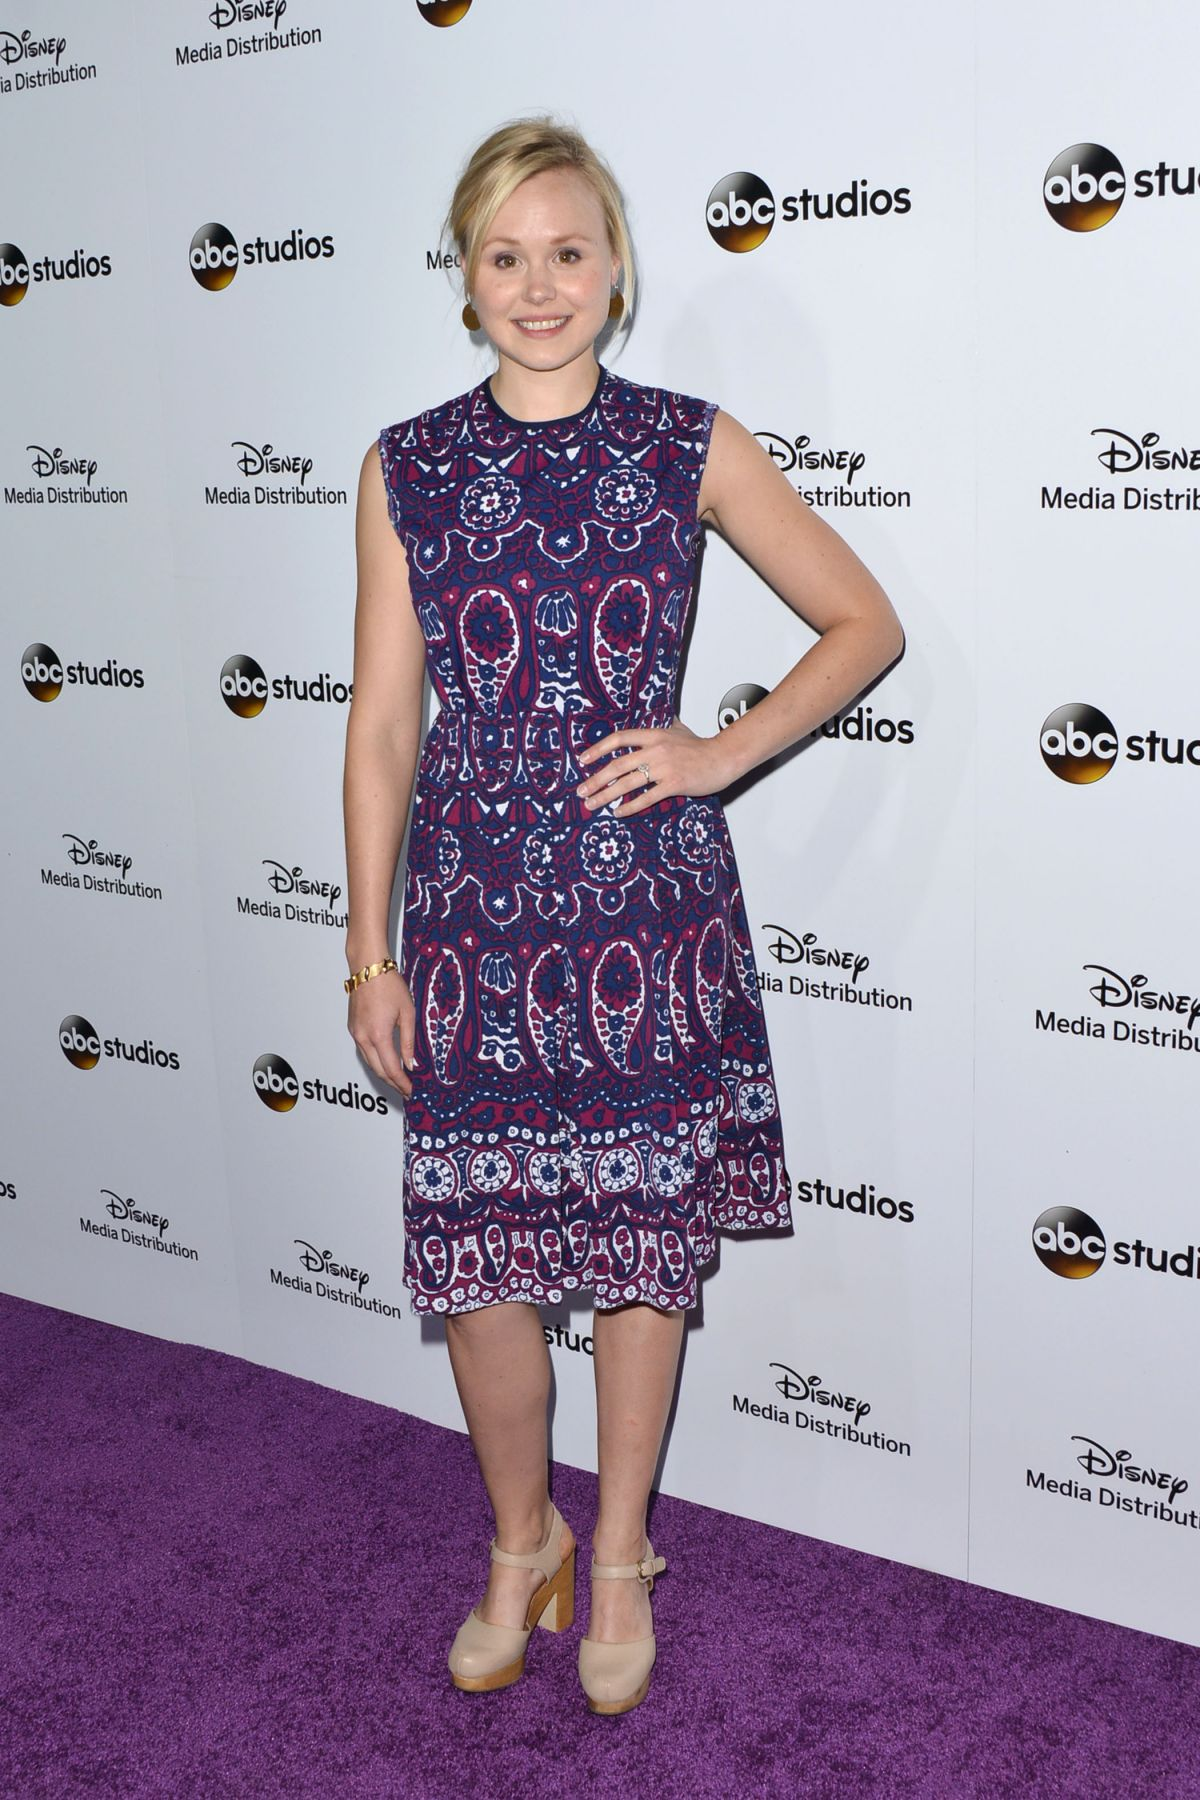 ALISON PILL at Disney Media Distribution 2015 International Upfront in Burbank